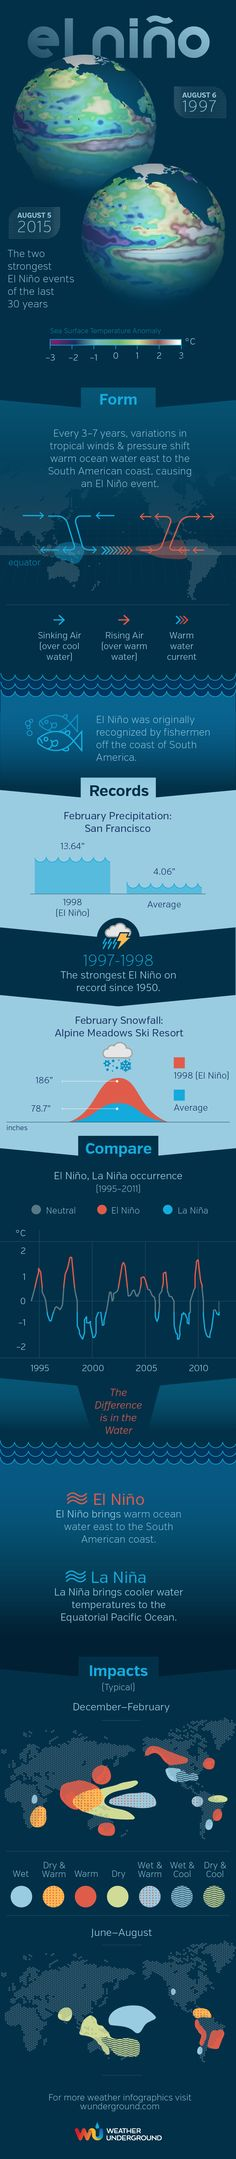 El Niño  What is El Niño? How does it form? What is the difference between El Niño and La Niña? Which one produces heavy rain for the Western U.S.? Understand the science behind El Niño with this Weather Underground infographic.